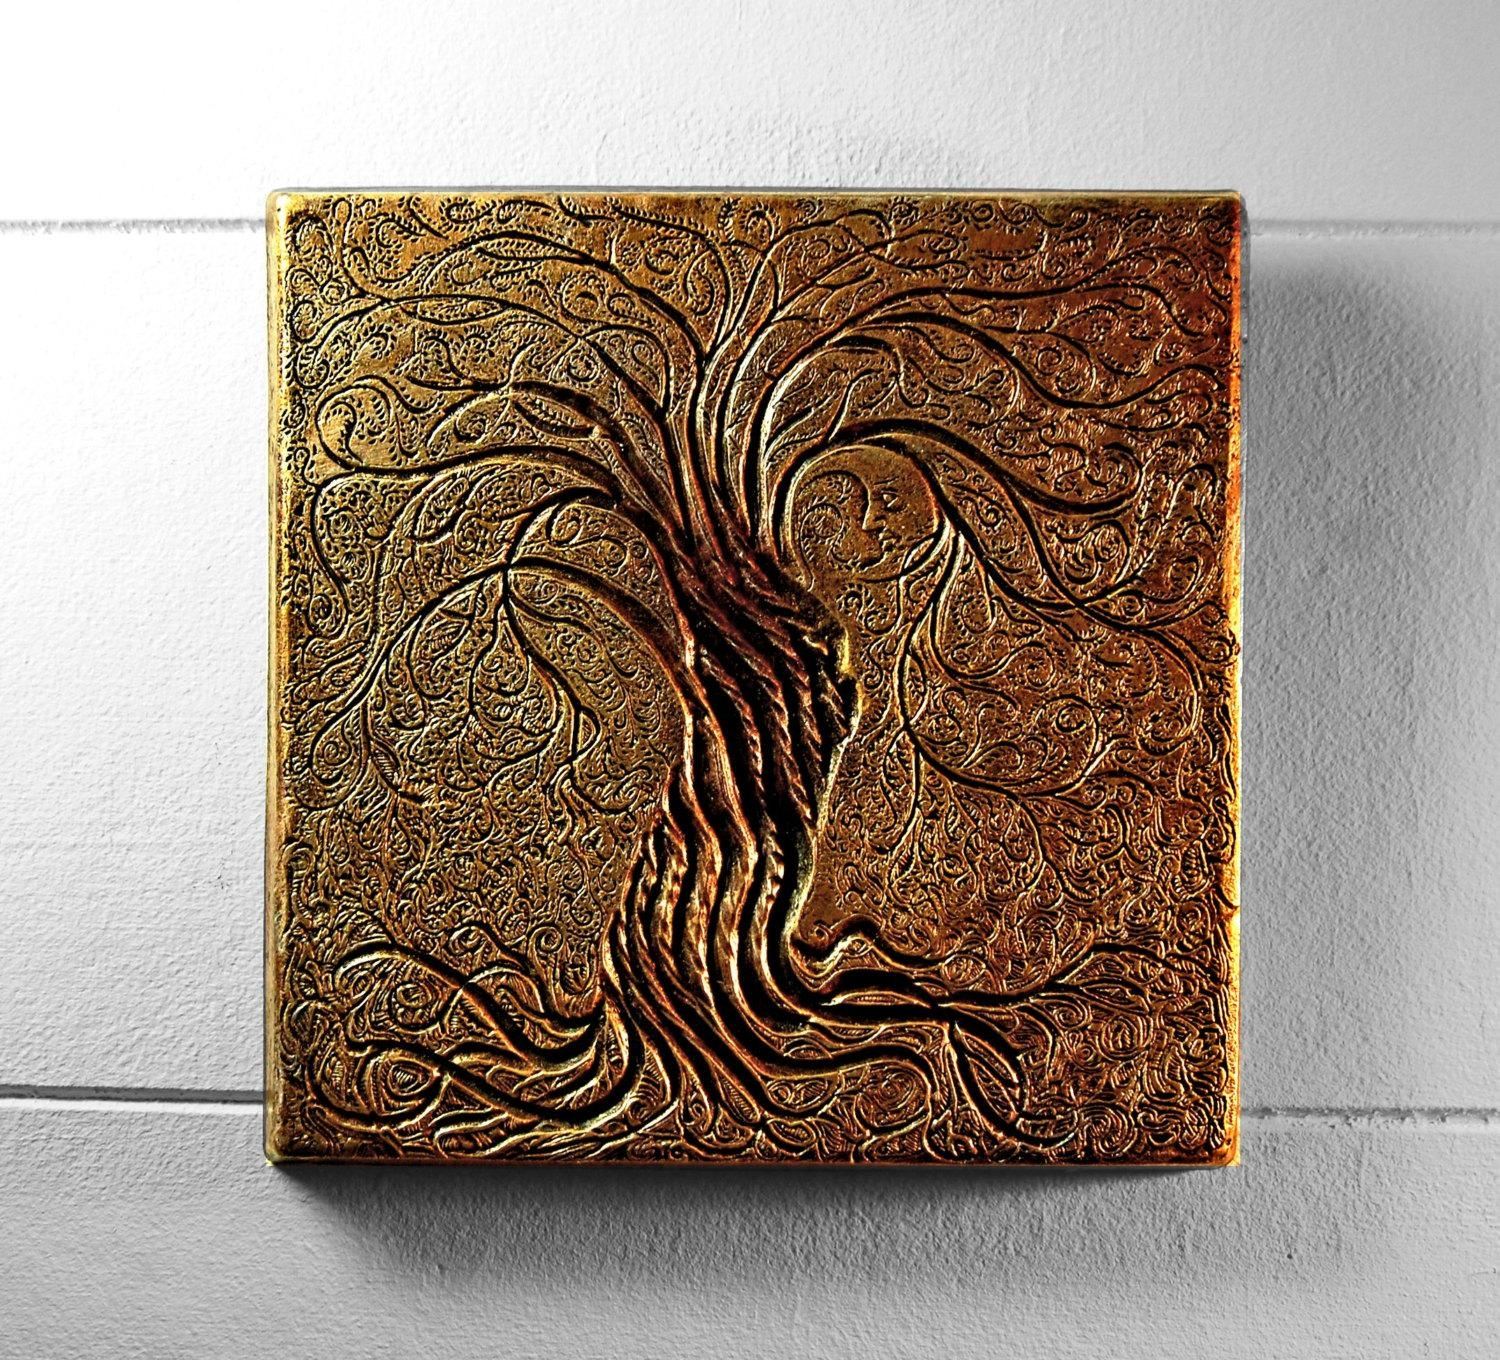 Tree Of Life Wall Art Sculpture Rustic Gift Bronze Tree Throughout Bronze Tree Wall Art (Image 14 of 20)